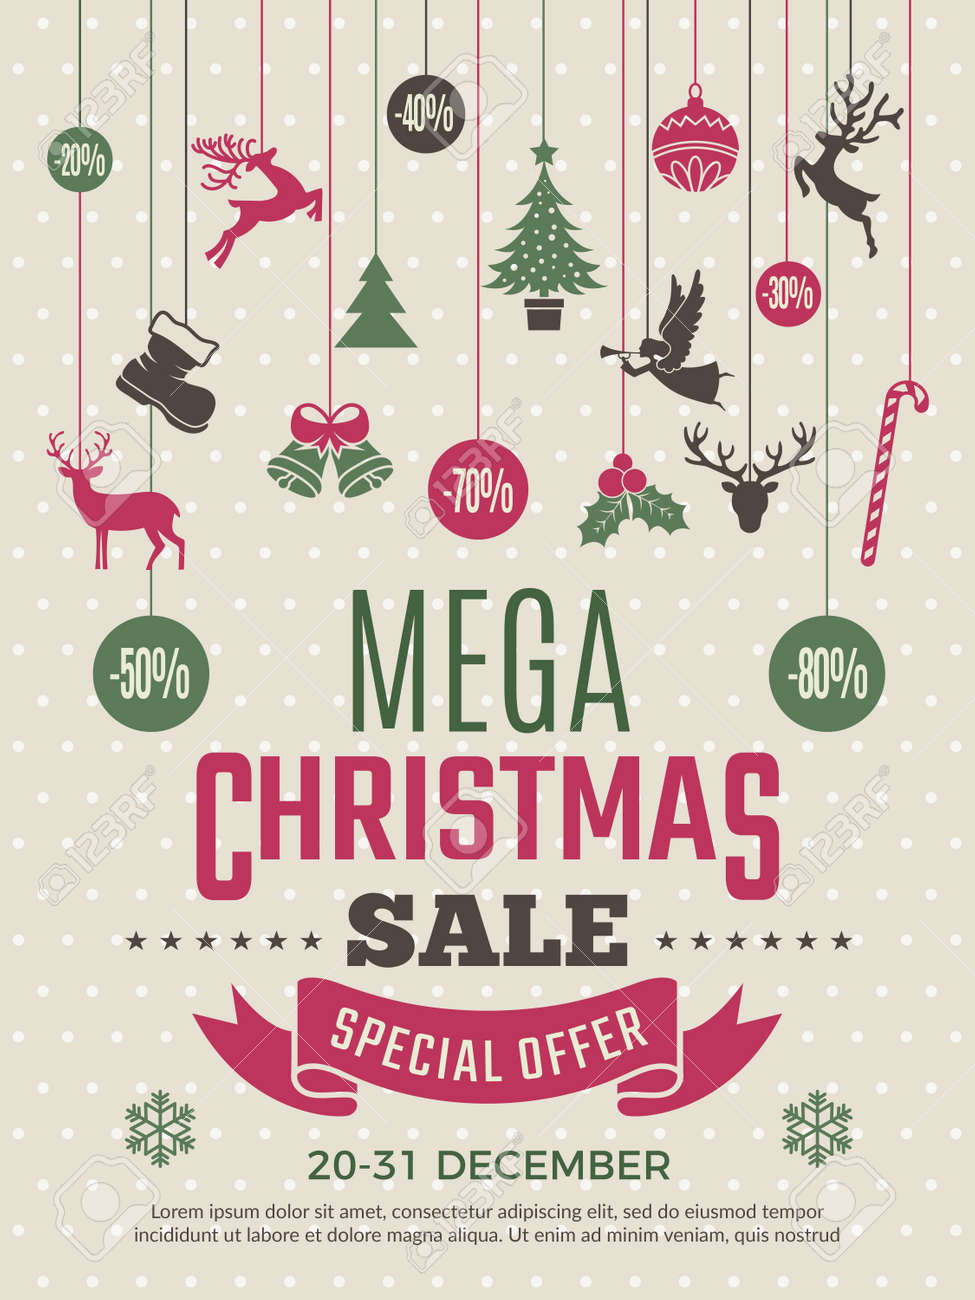 Christmas poster for big sales. New year voucher deals discounts vector coupon template. Illustration of mega banner sale for xmas and new year - 168206861